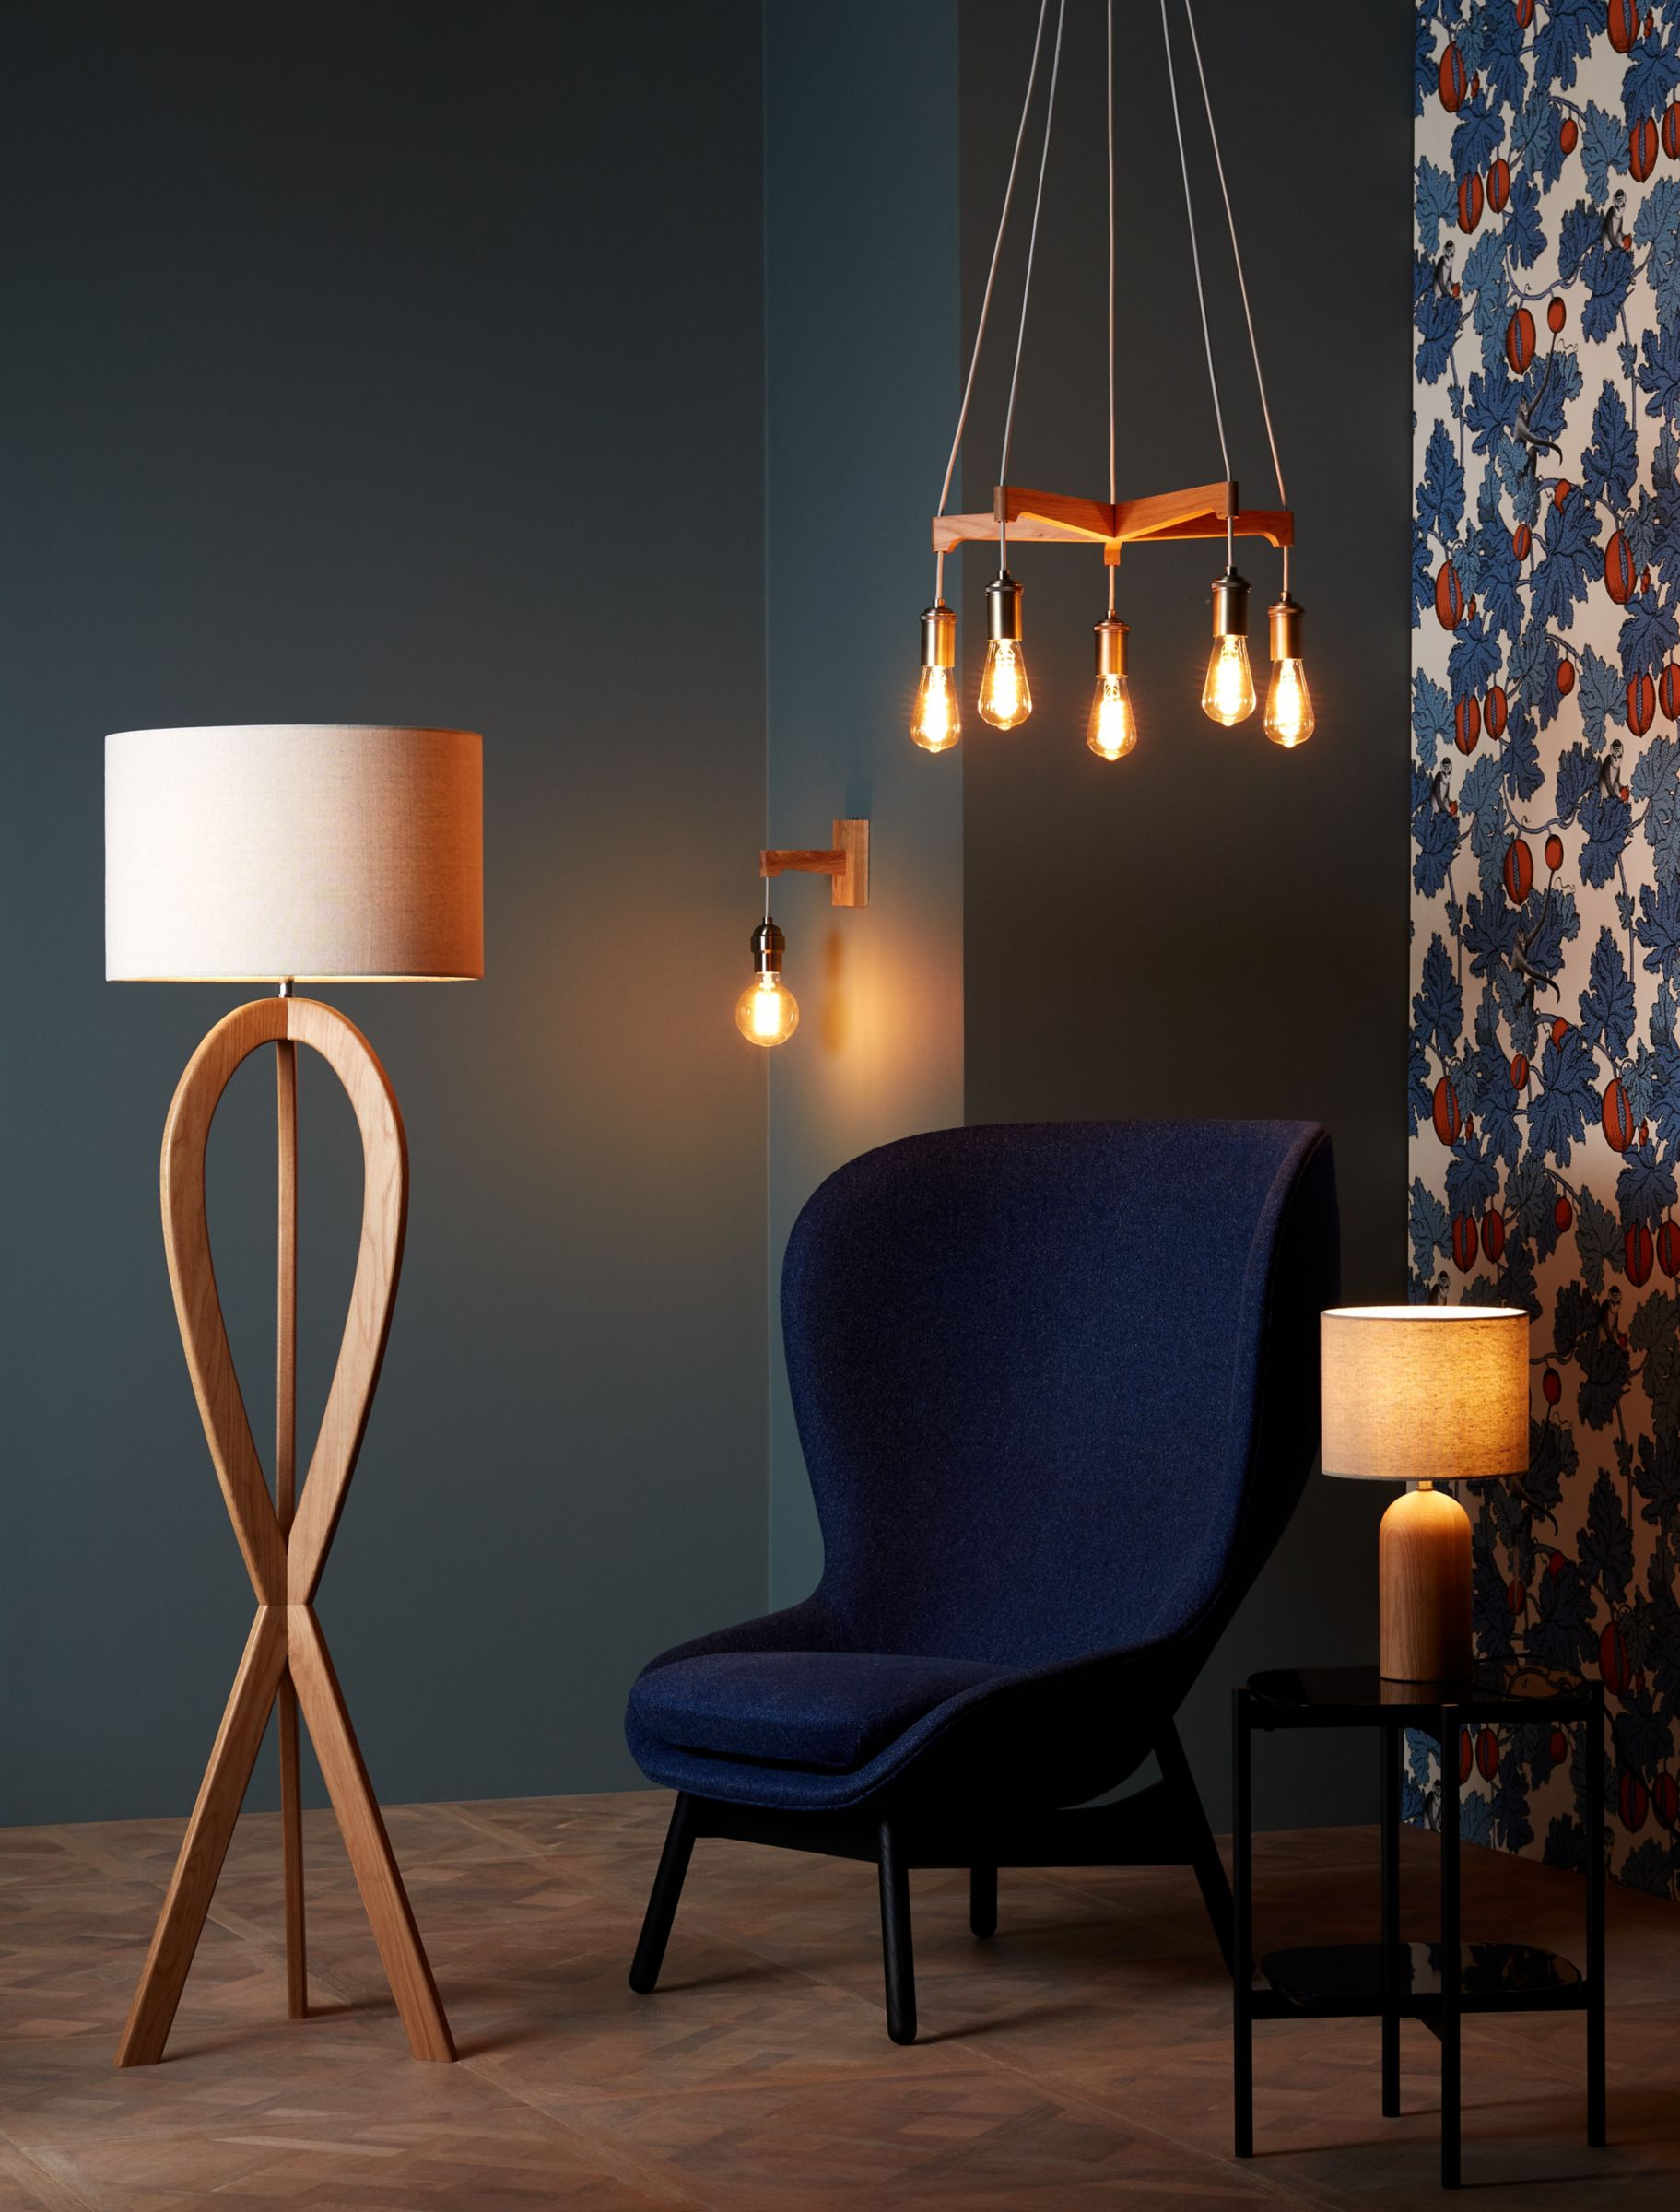 Floor lamps and overhead lighting